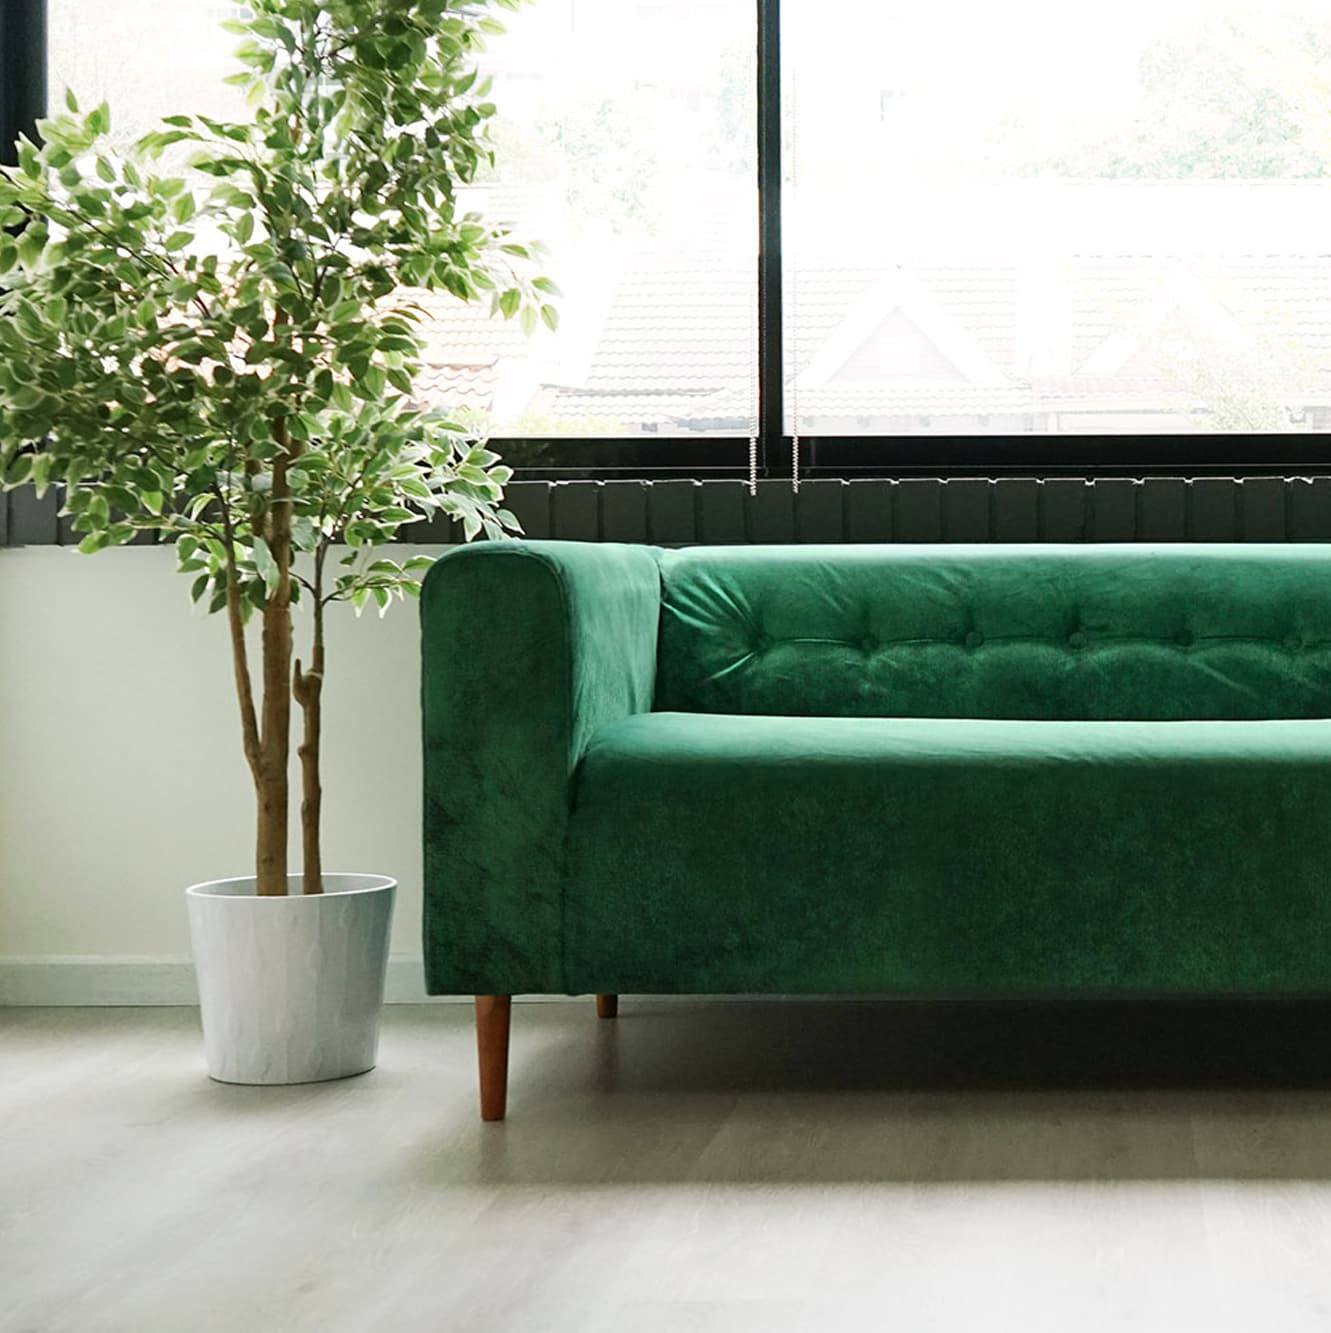 https://comfort-works.com/es/funda-sofa-klippan-IKEA-40